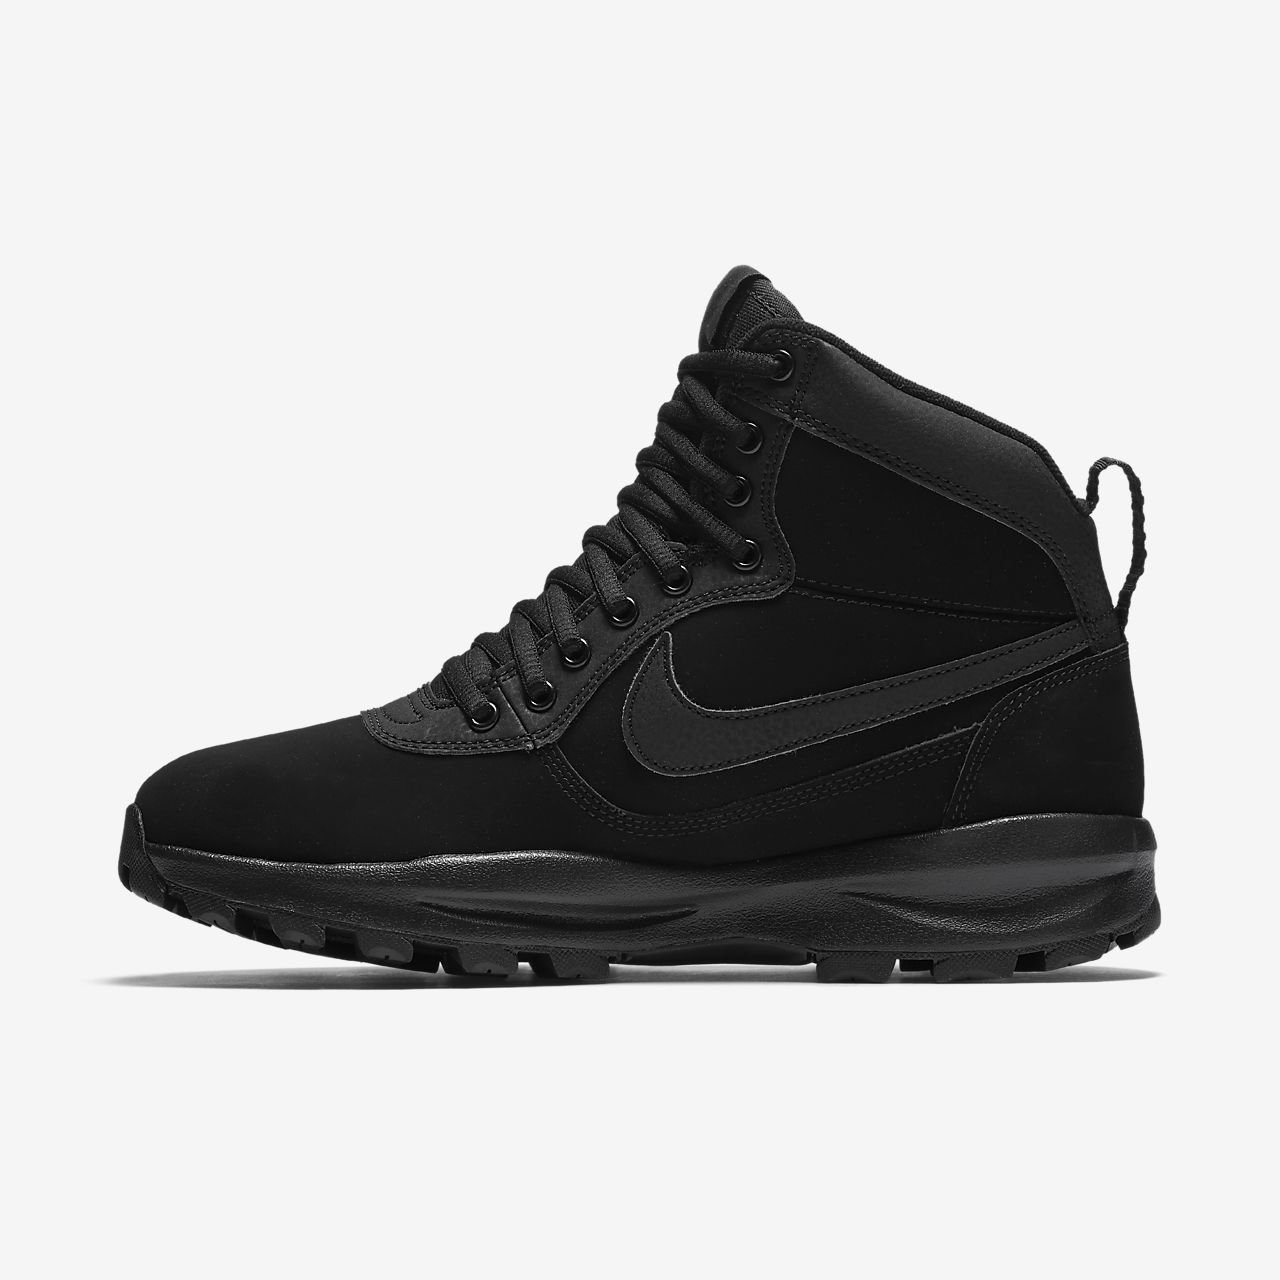 new nike soccer coming out nike acg shoes